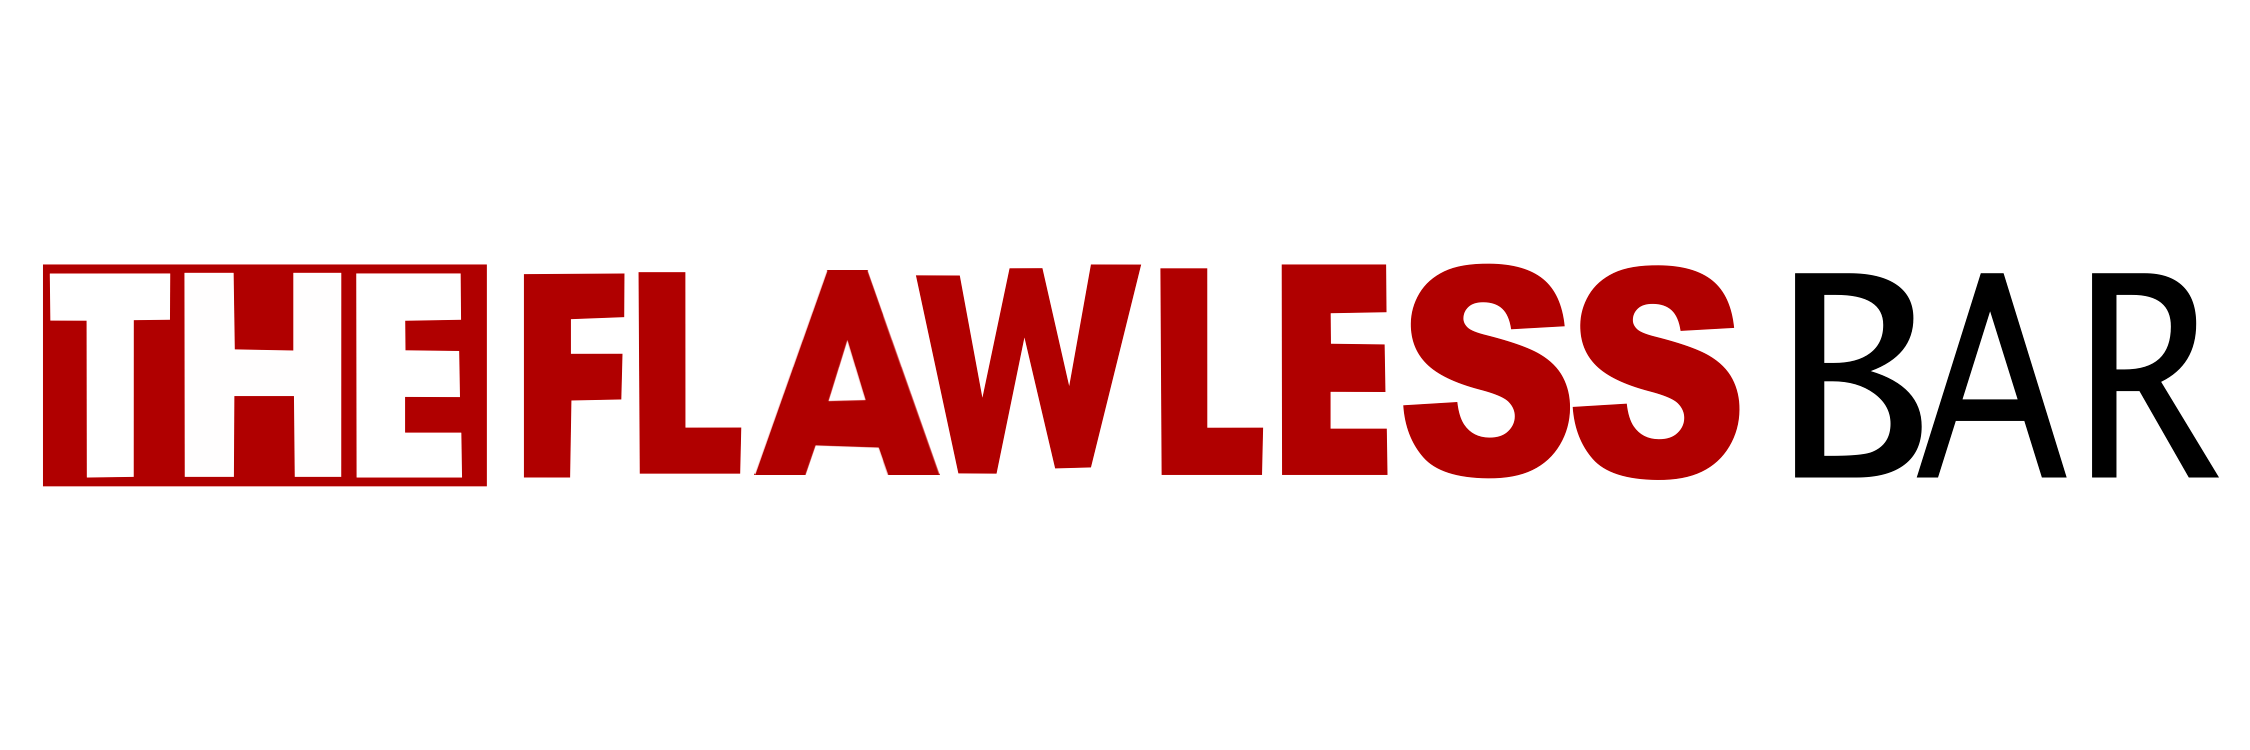 Flawless Bar - Logo